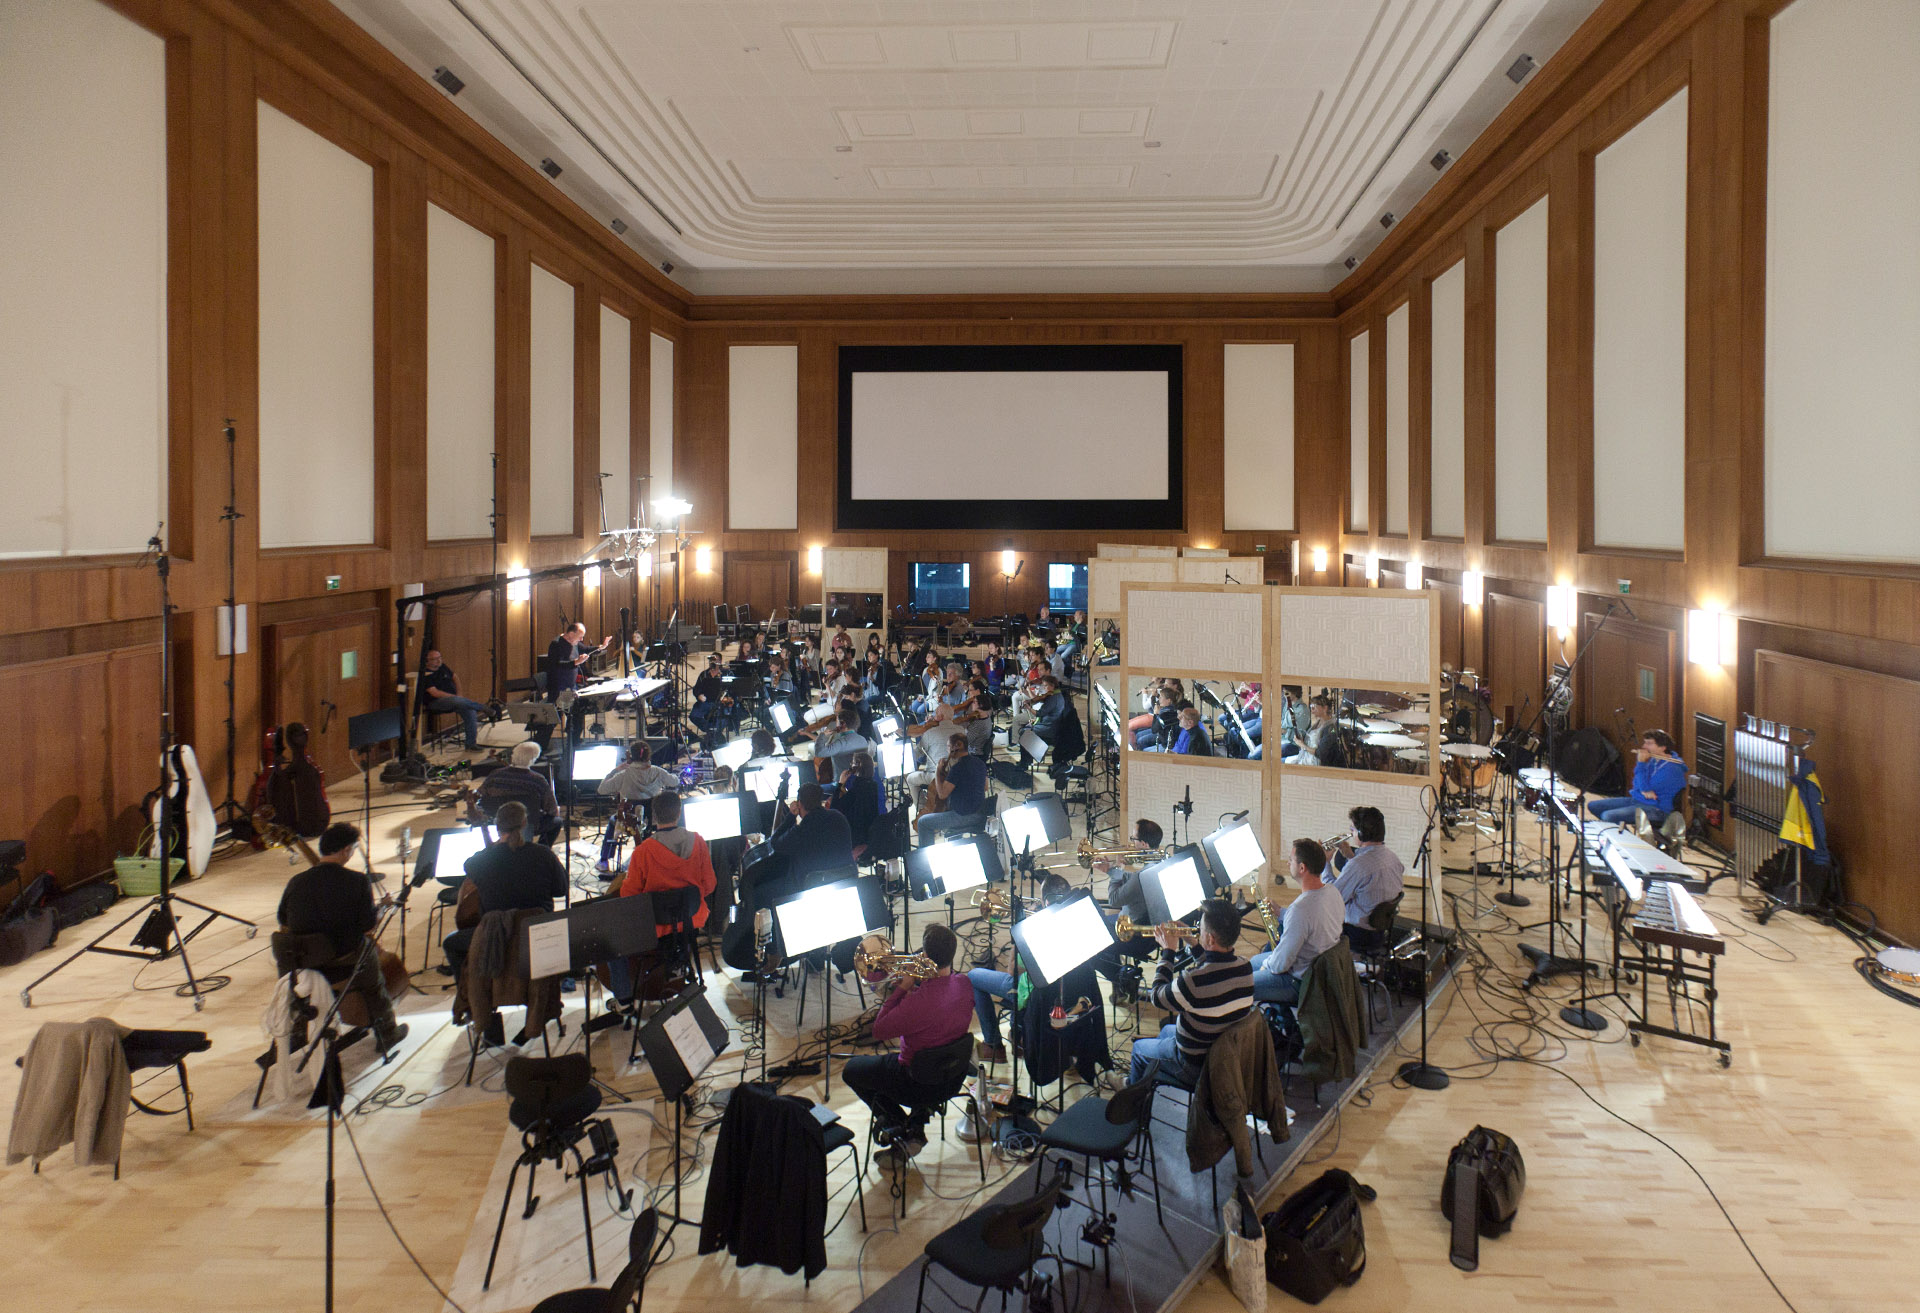 Conrad Pope conducting the Synchron Stage Orchestra at the initial recordings in October 2015.